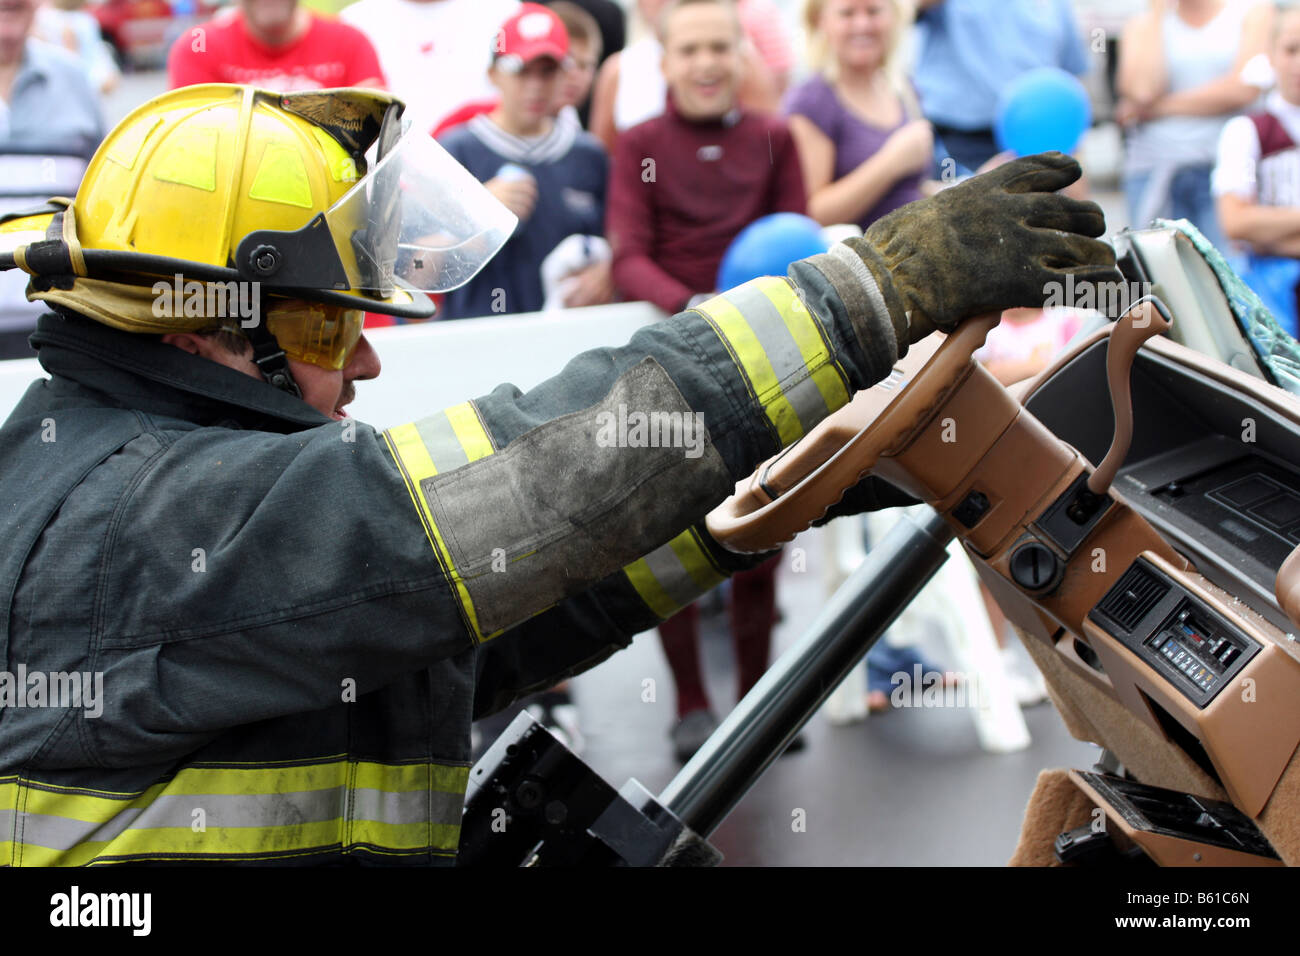 A fire fighter at a Fire Safety Fair having fun by sitting in the drivers seat after the car has been taken apart - Stock Image